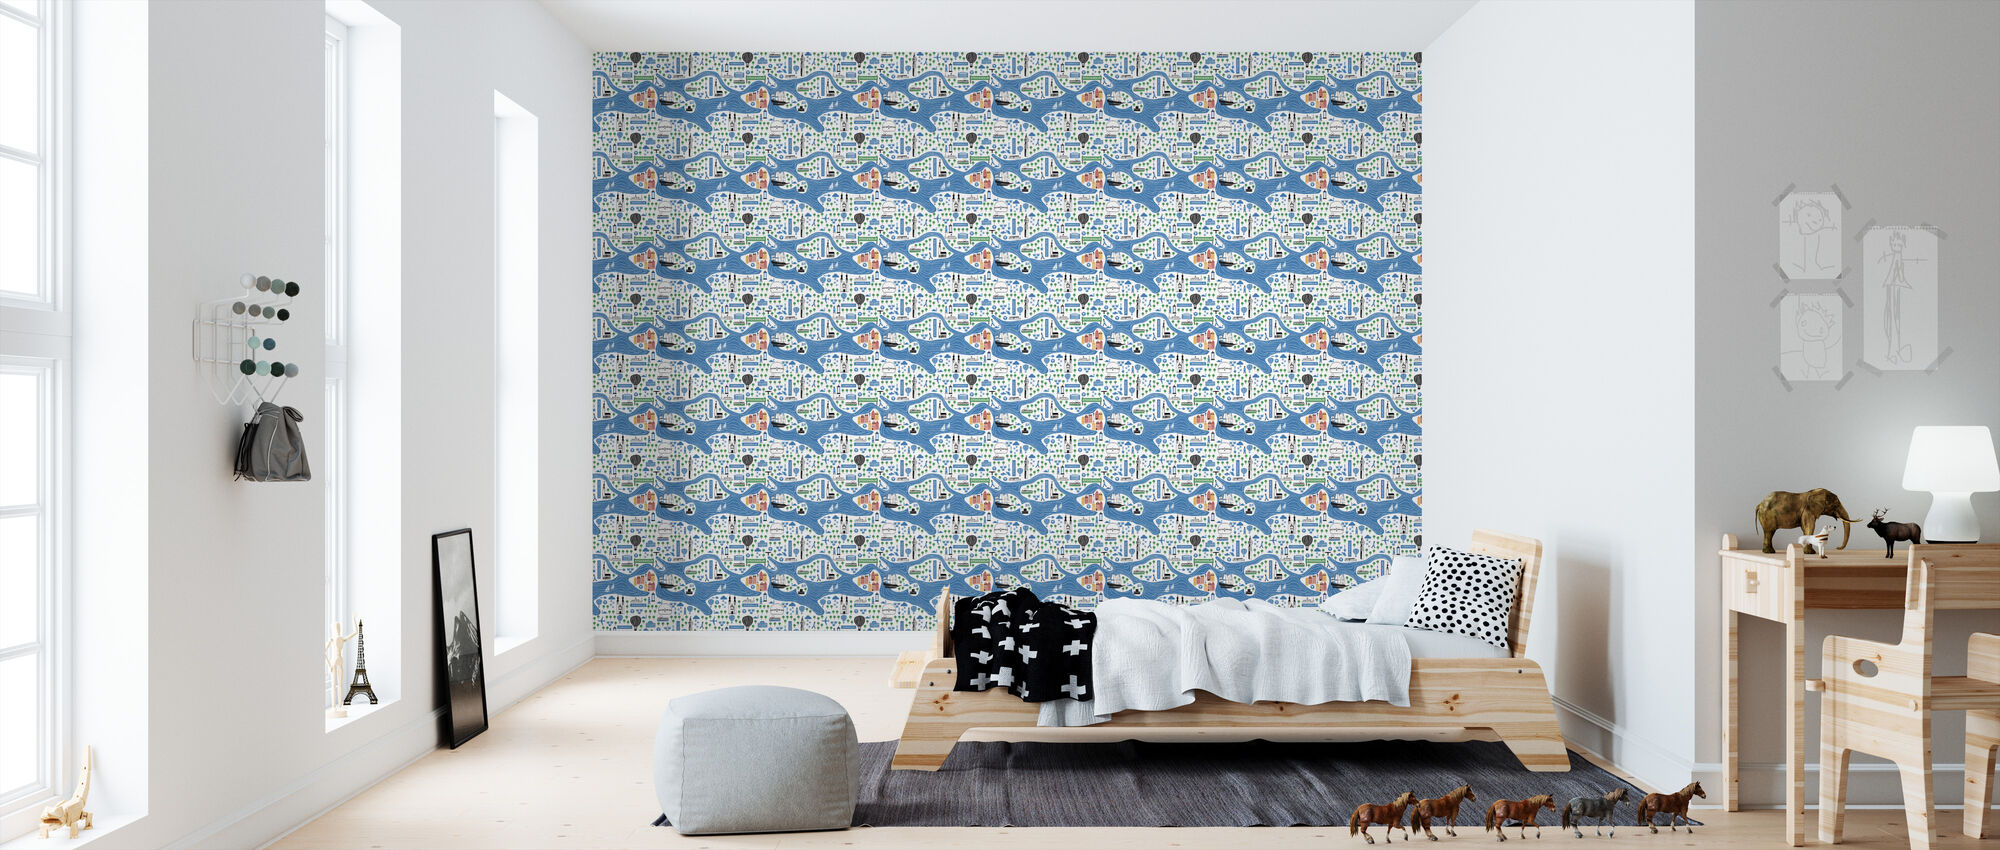 Stockholm - Wallpaper - Kids Room